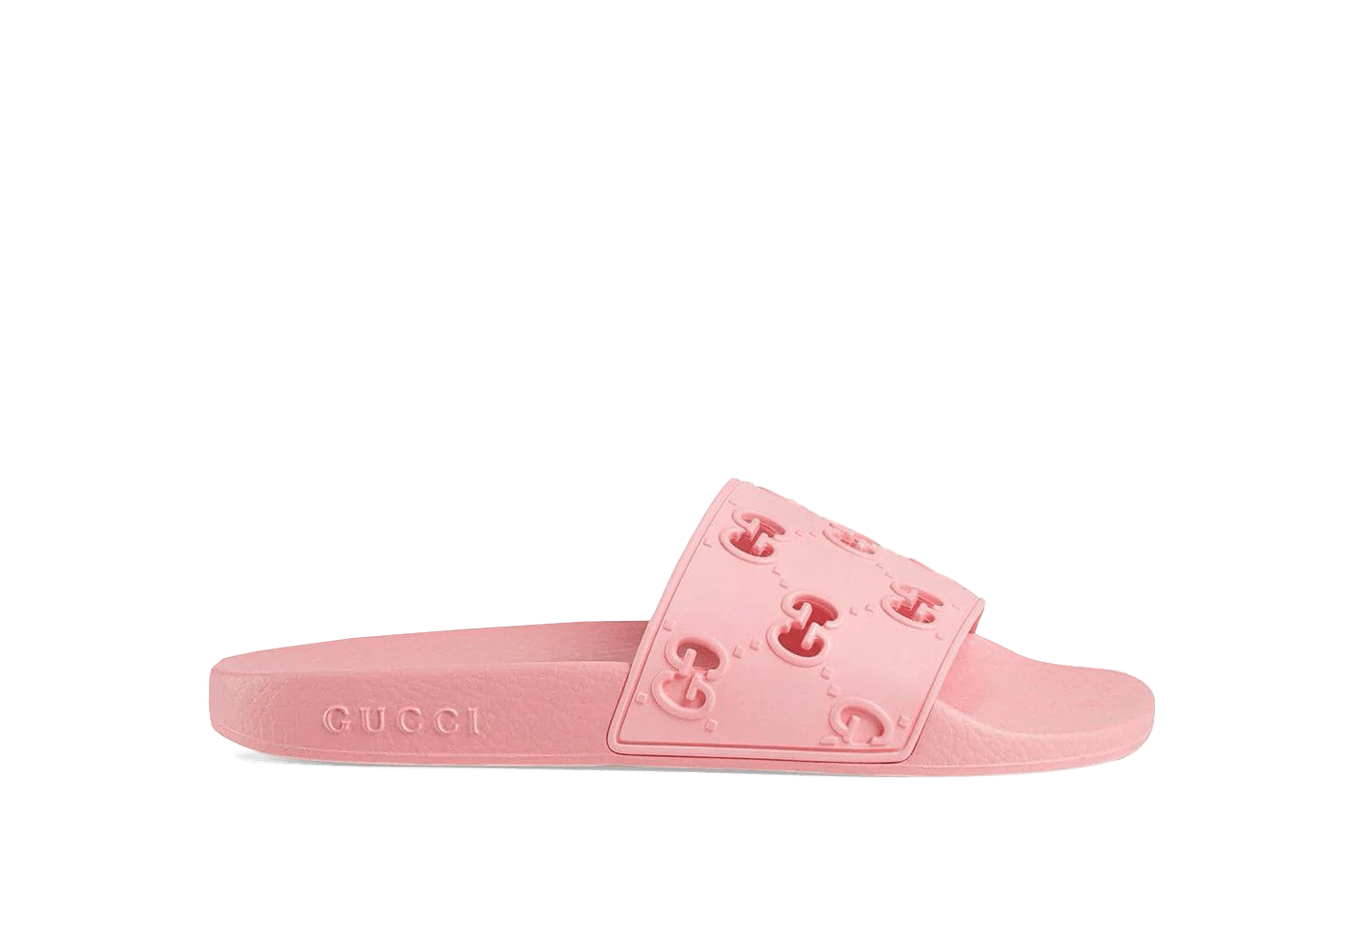 Gucci     Slide Sandal Pink the best workout inspiration